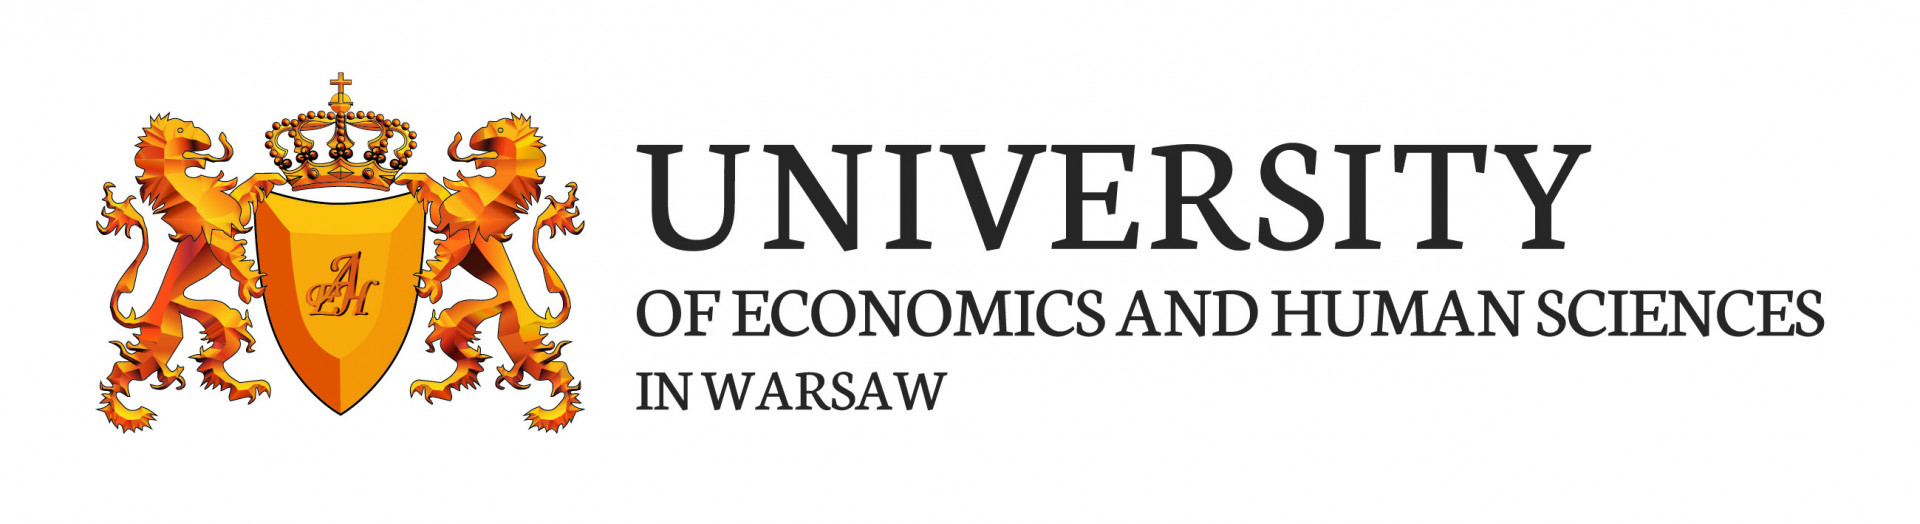 Double Degree with University of Economics and Human Sciences in Warsaw